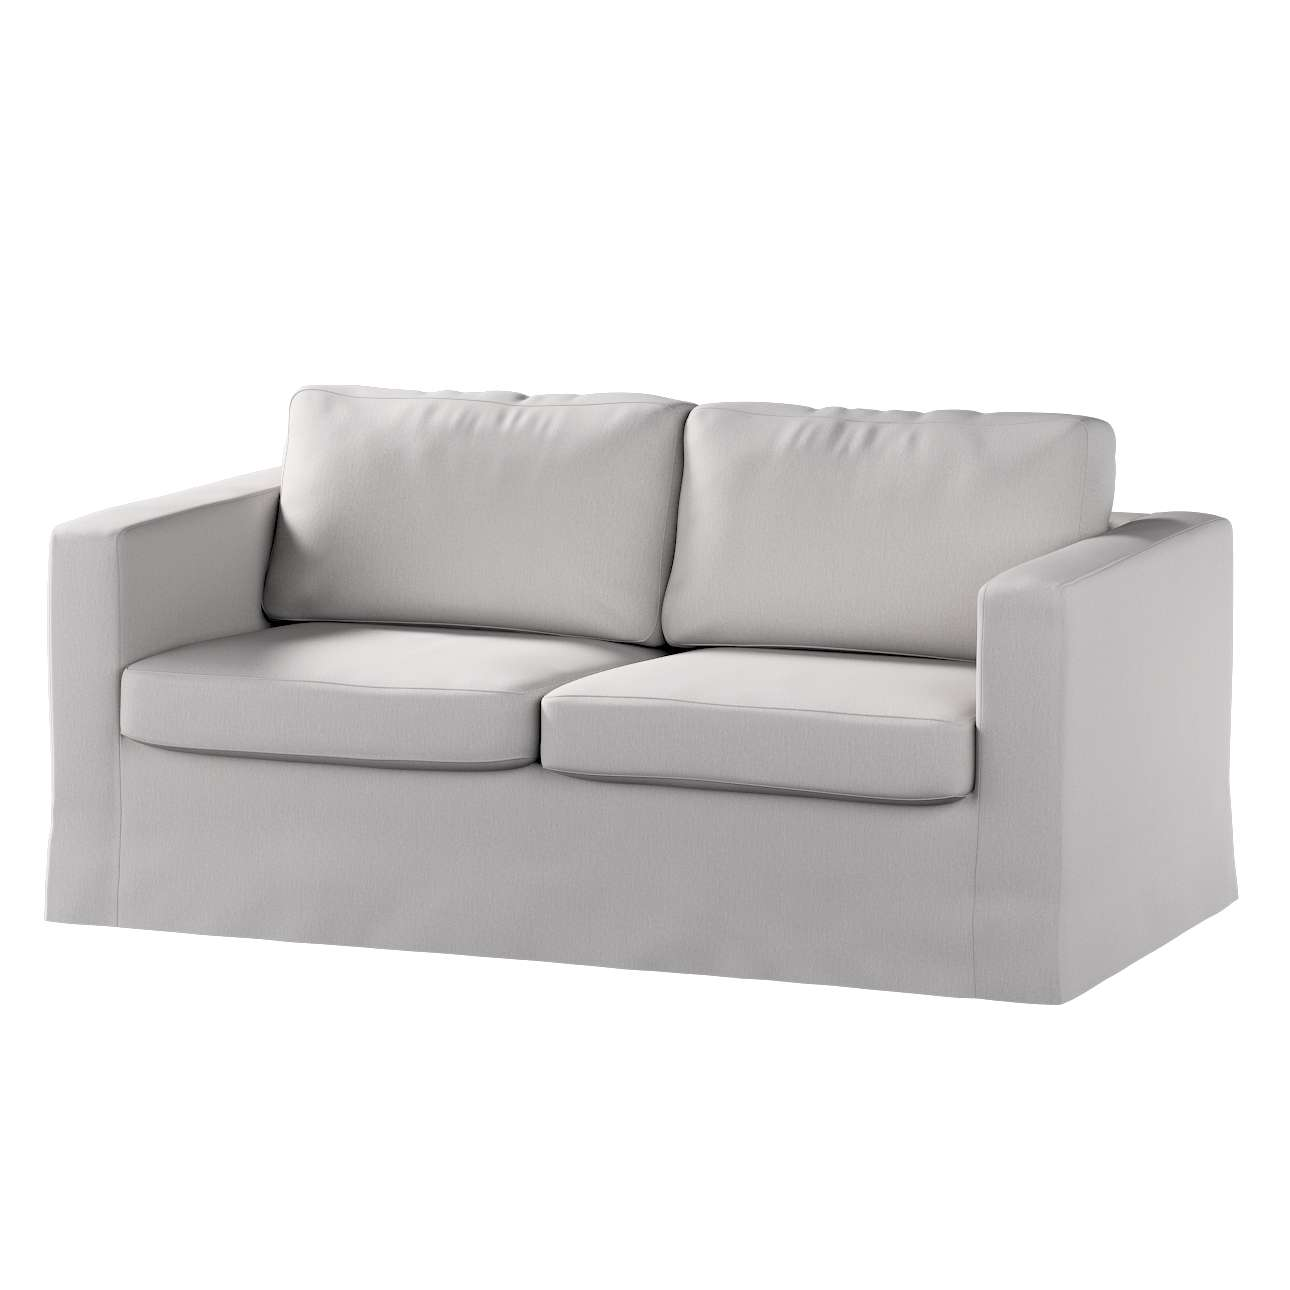 Floor length Karlstad 2-seater sofa cover in collection Chenille, fabric: 702-23